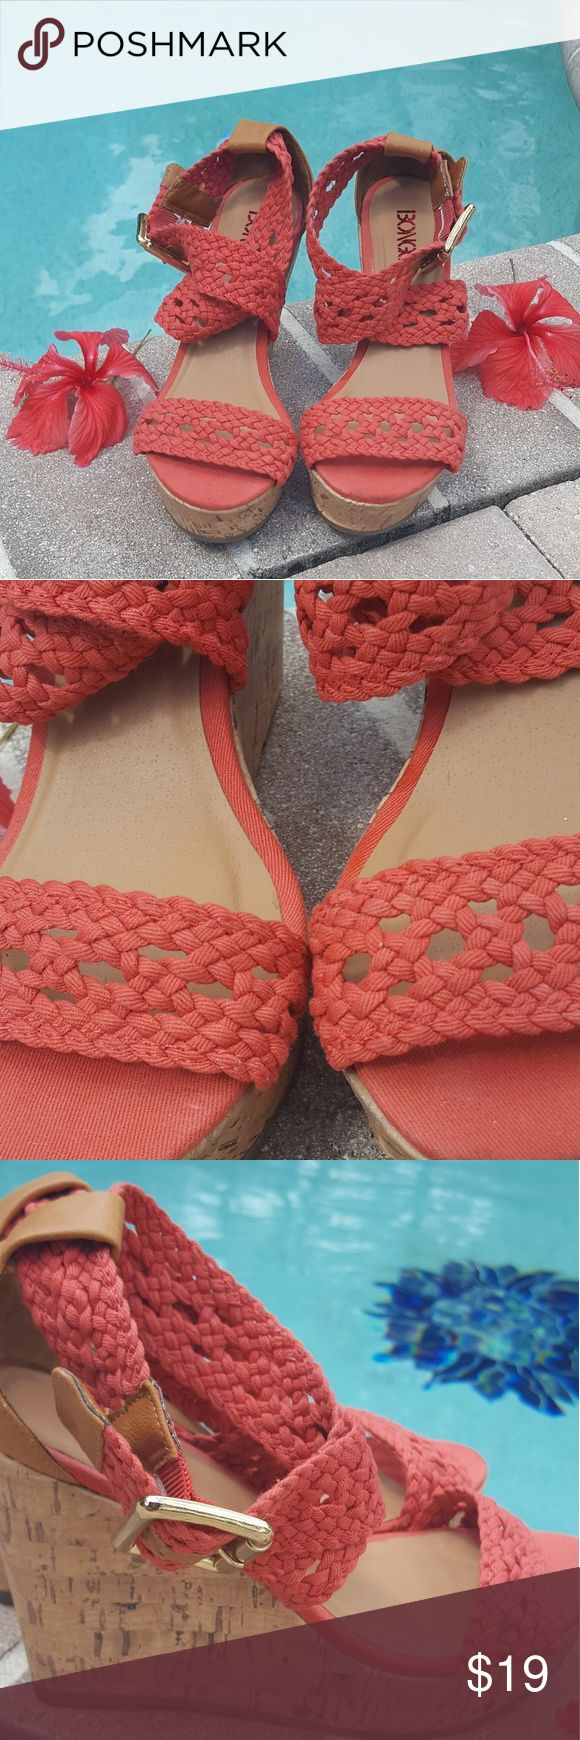 🌺BONGO🌺  SANDAL WEDGES Crochet Sandal Wedges   Like new Synthetic leather and fabric upper Crochet detailing Decorative brass-tone ankle buckle Synthetic cork panels Almond toe Synthetic leather cushioned footbed Rubber midsole Treaded rubber outsole  4-1/2 in. wedge heel 1 in. platform Open toe  Wipe clean Imported BONGO Shoes Wedges